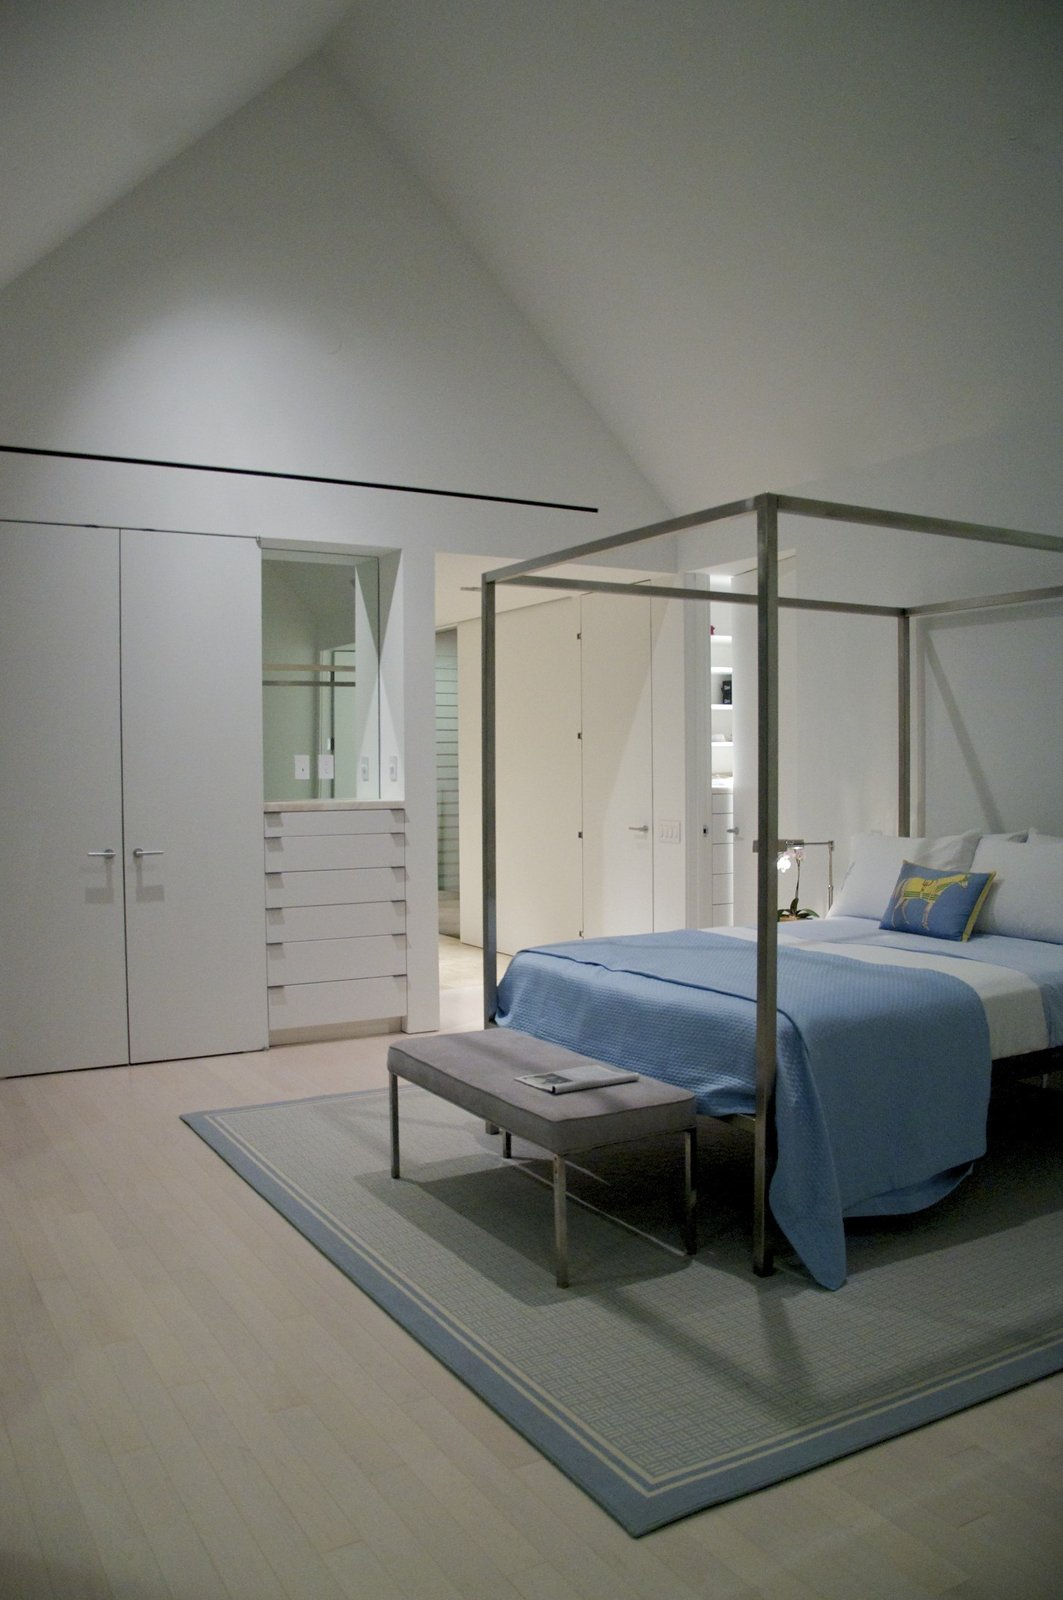 Bedroom, Bed, Bench, Light Hardwood Floor, and Storage interior, bedroom  The Birdhouse by Centric General Contractors